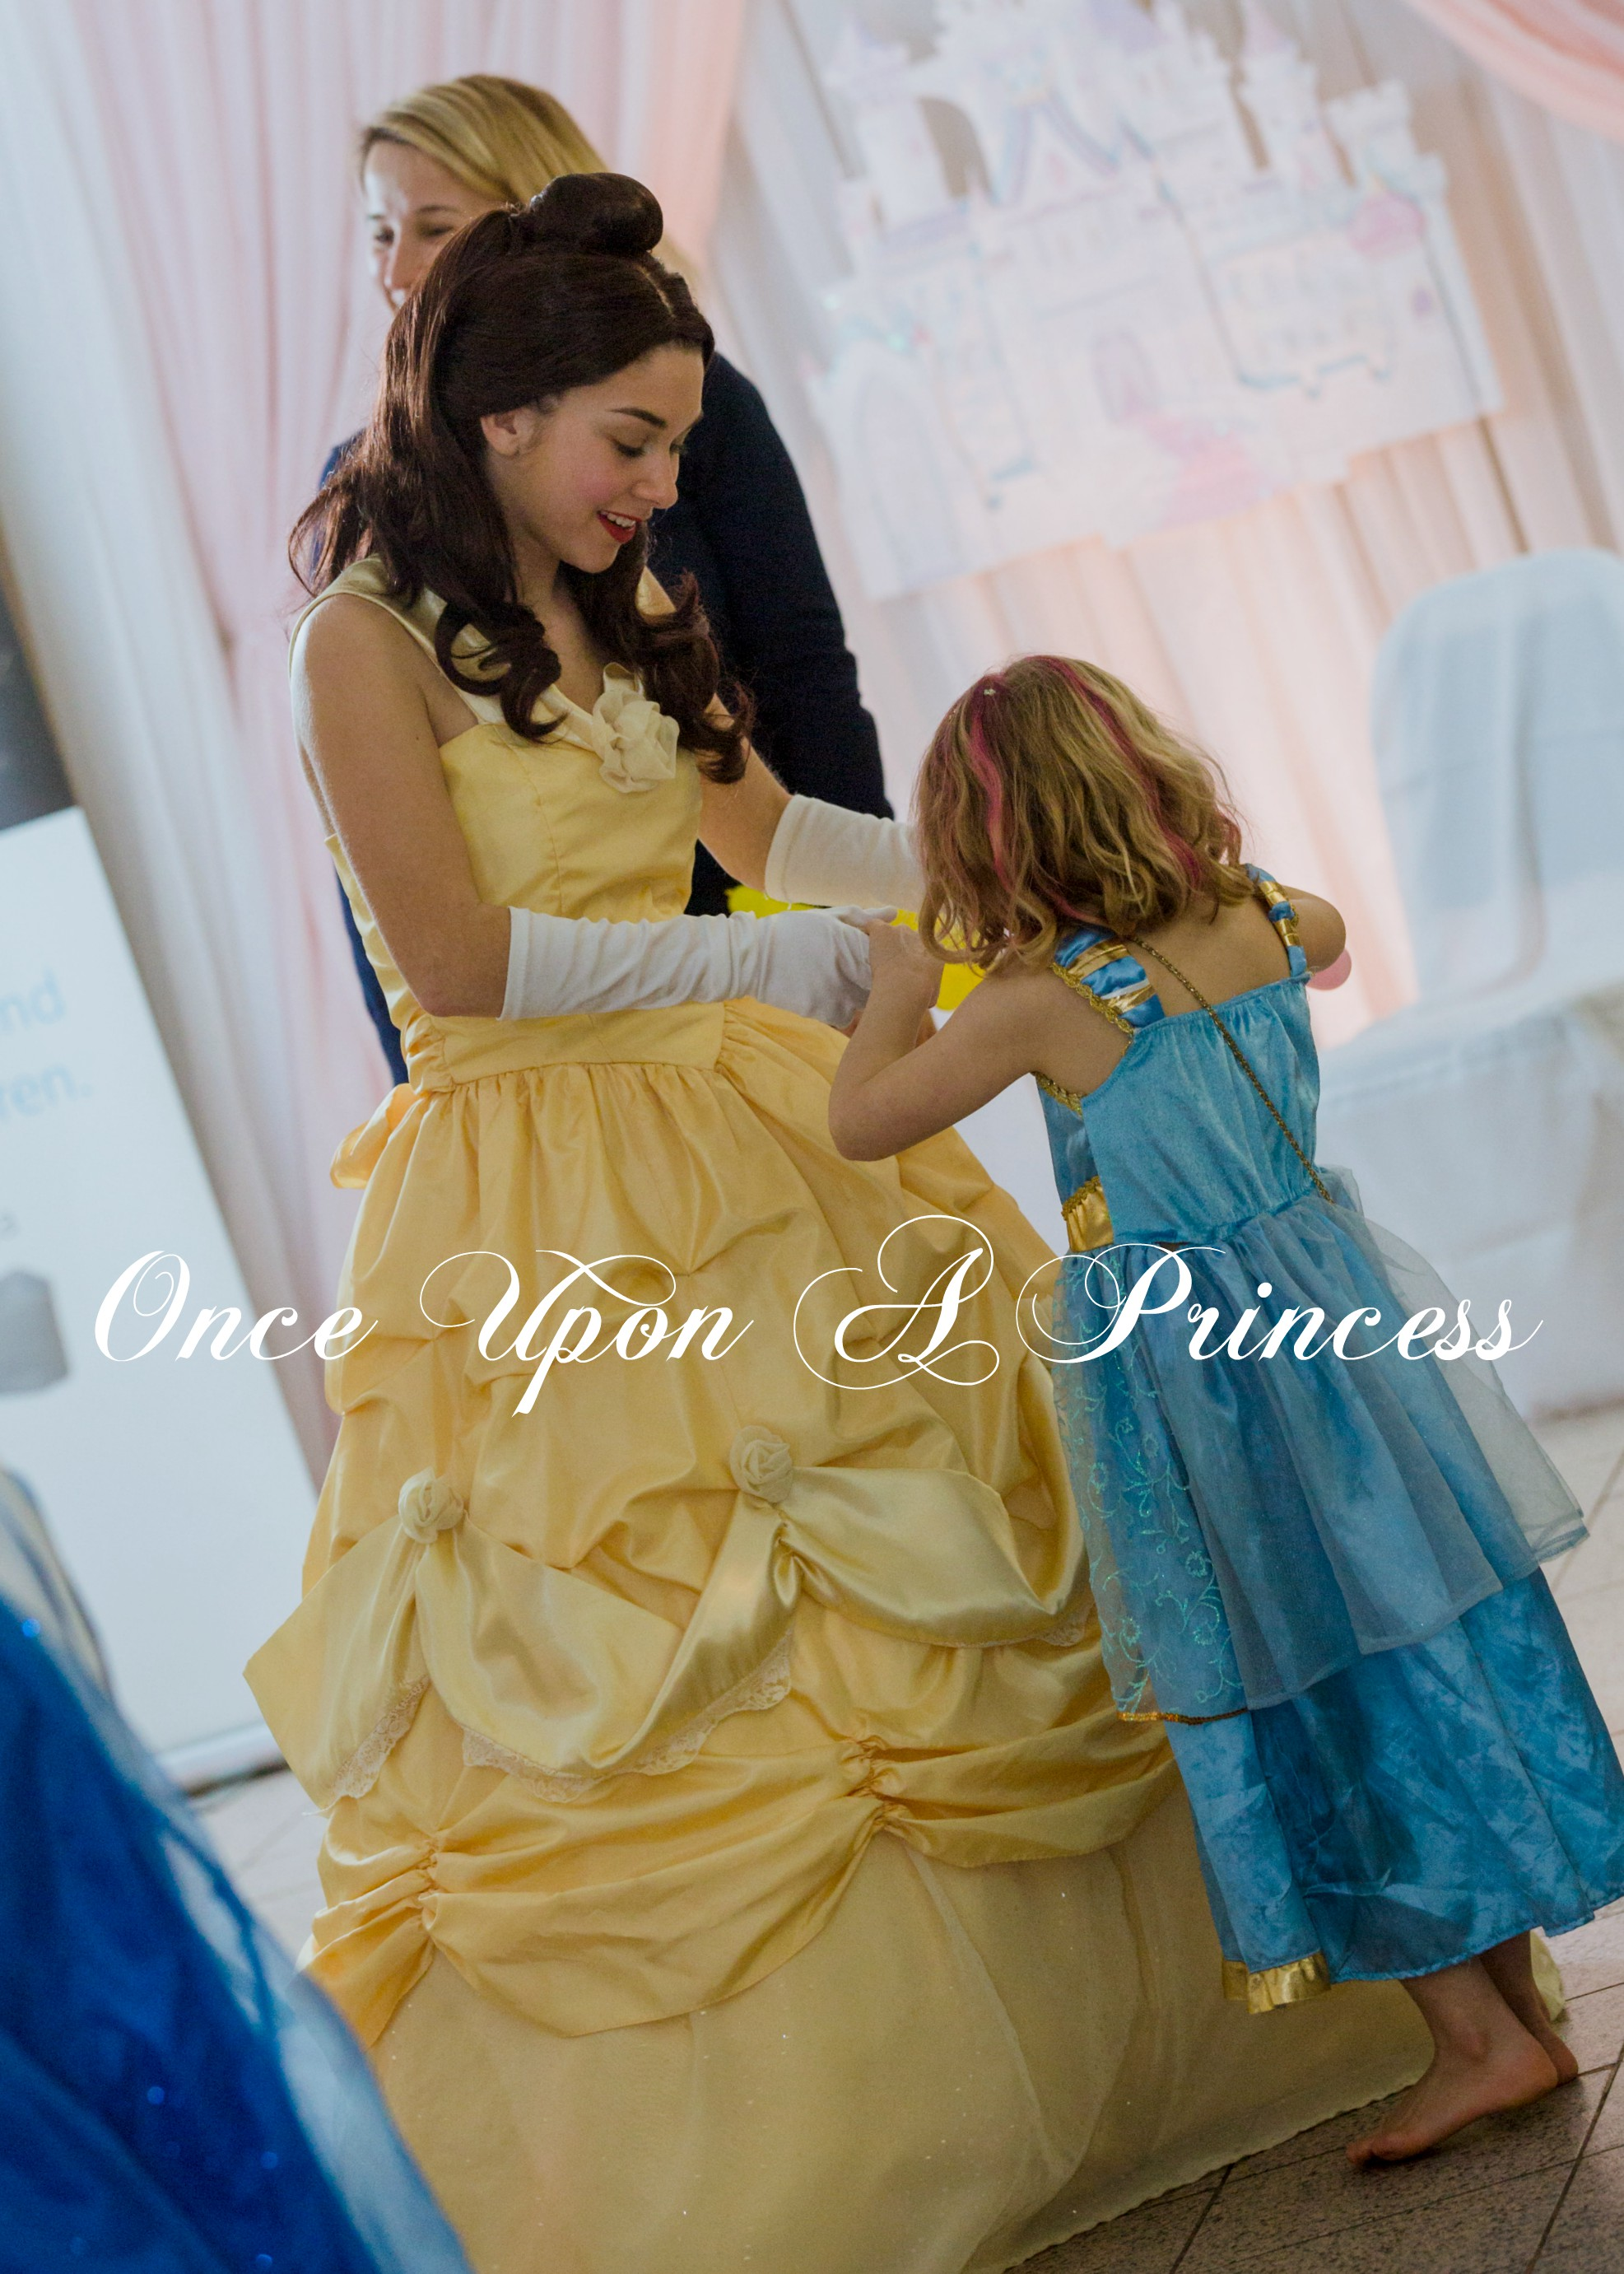 Dance Party belle Once Upon A Princess